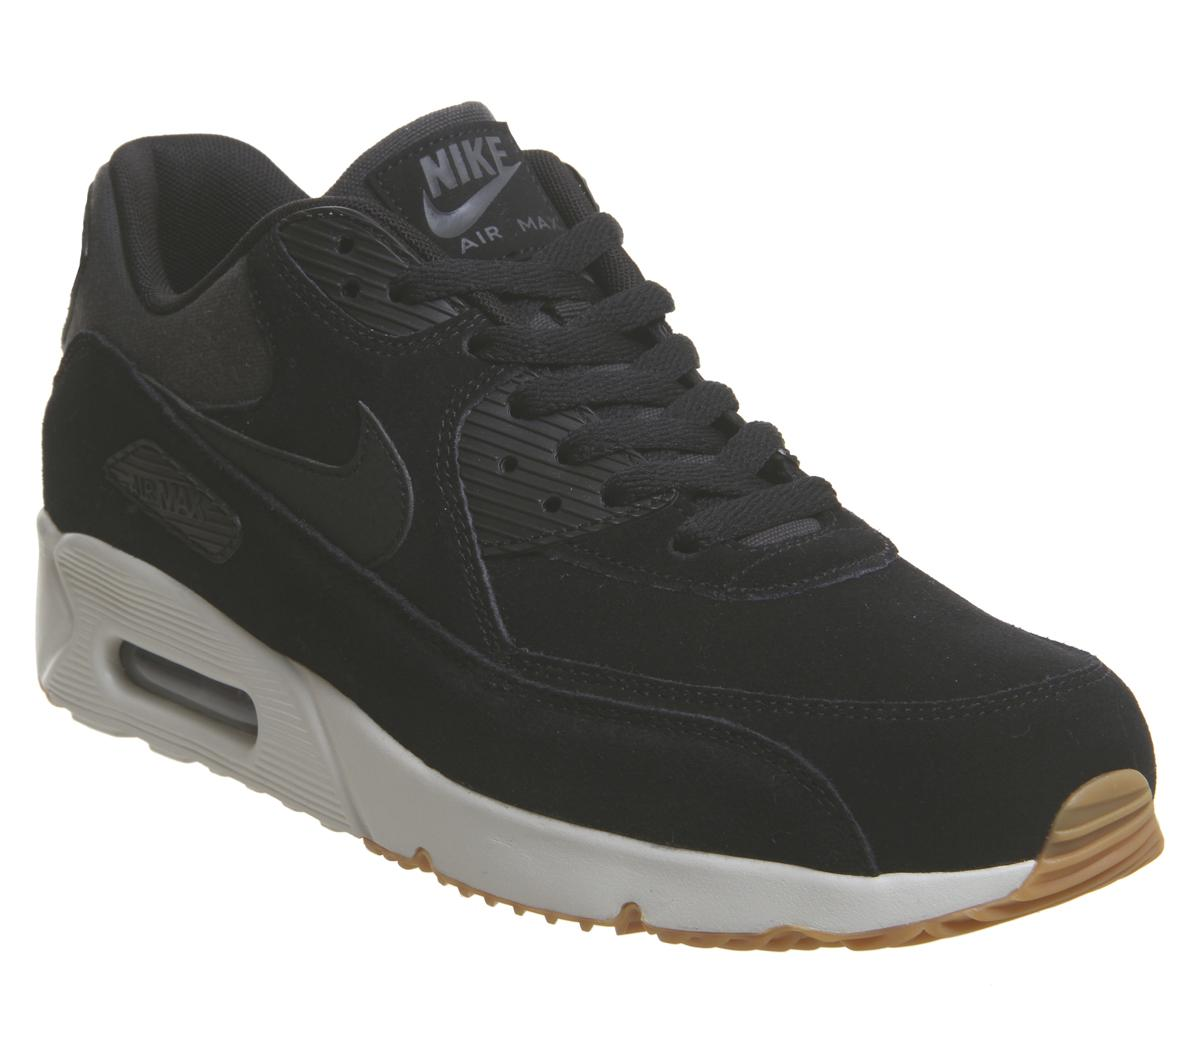 Air Max 90 Ultra 2.0 Trainers